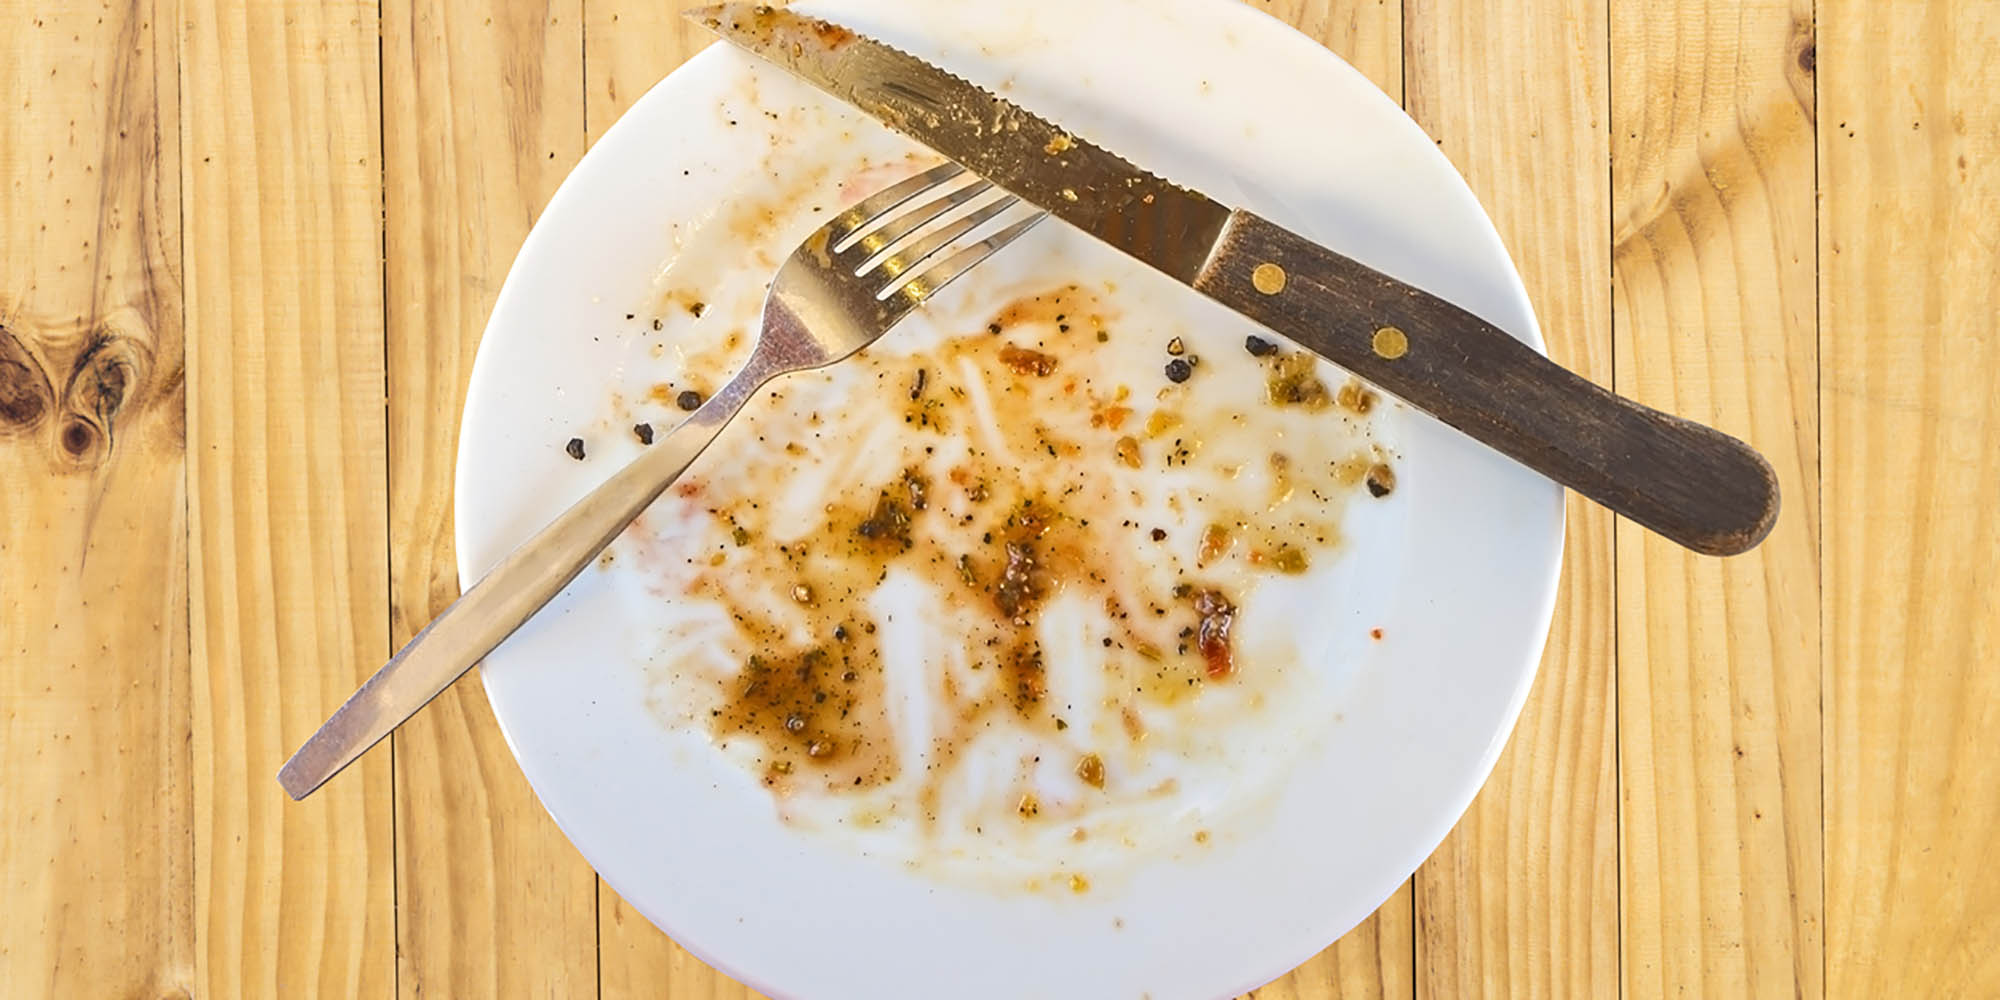 I Want to Stop Cleaning My Plate Out of Habit